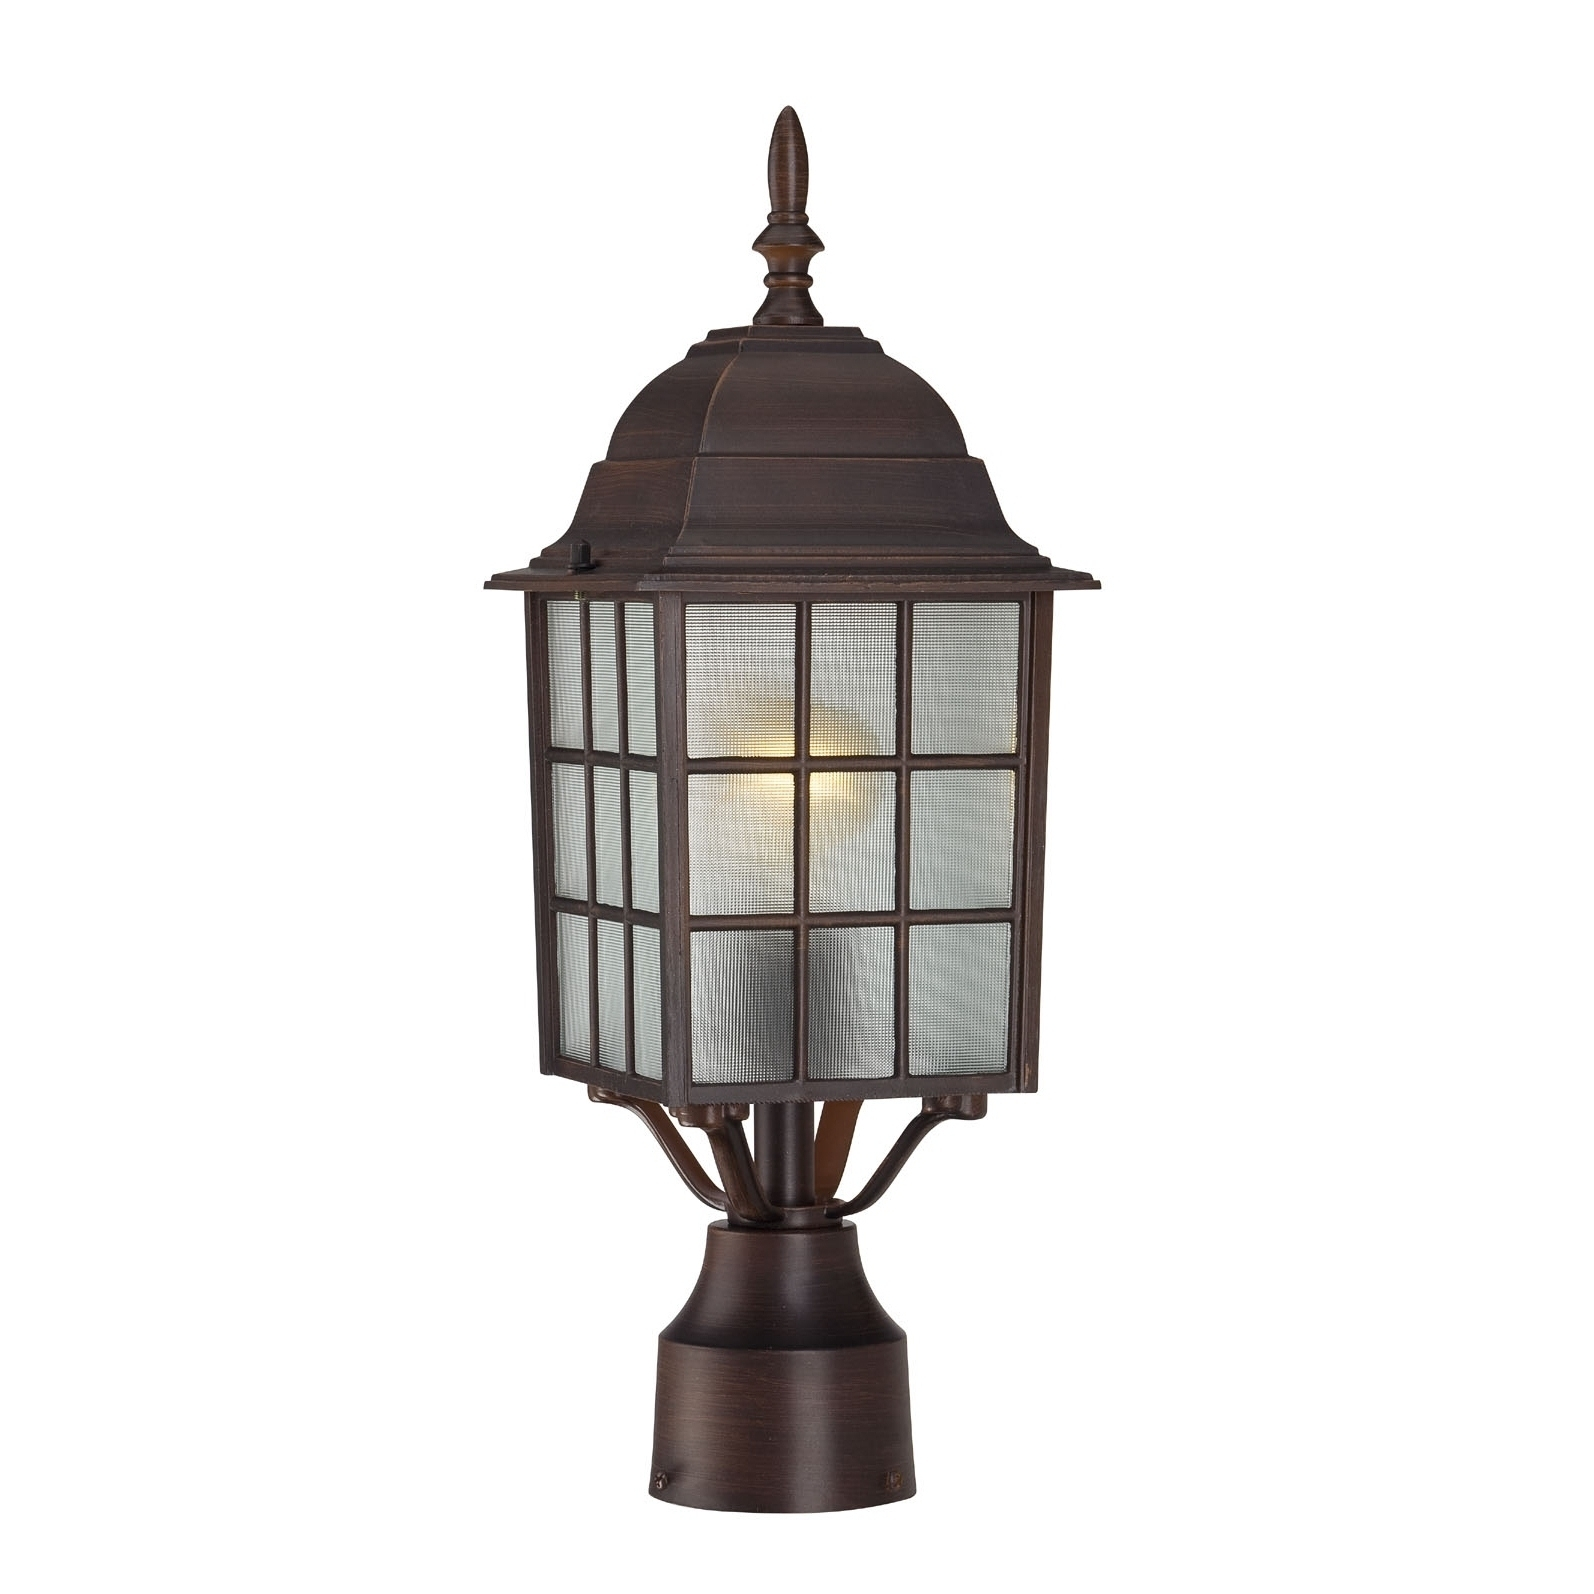 2018 Vintage And Rustic Outdoor Lighting With Regard To Rustic Outdoor Light Fixtures Bathroom Furniture Cabinet Vintage (View 1 of 20)